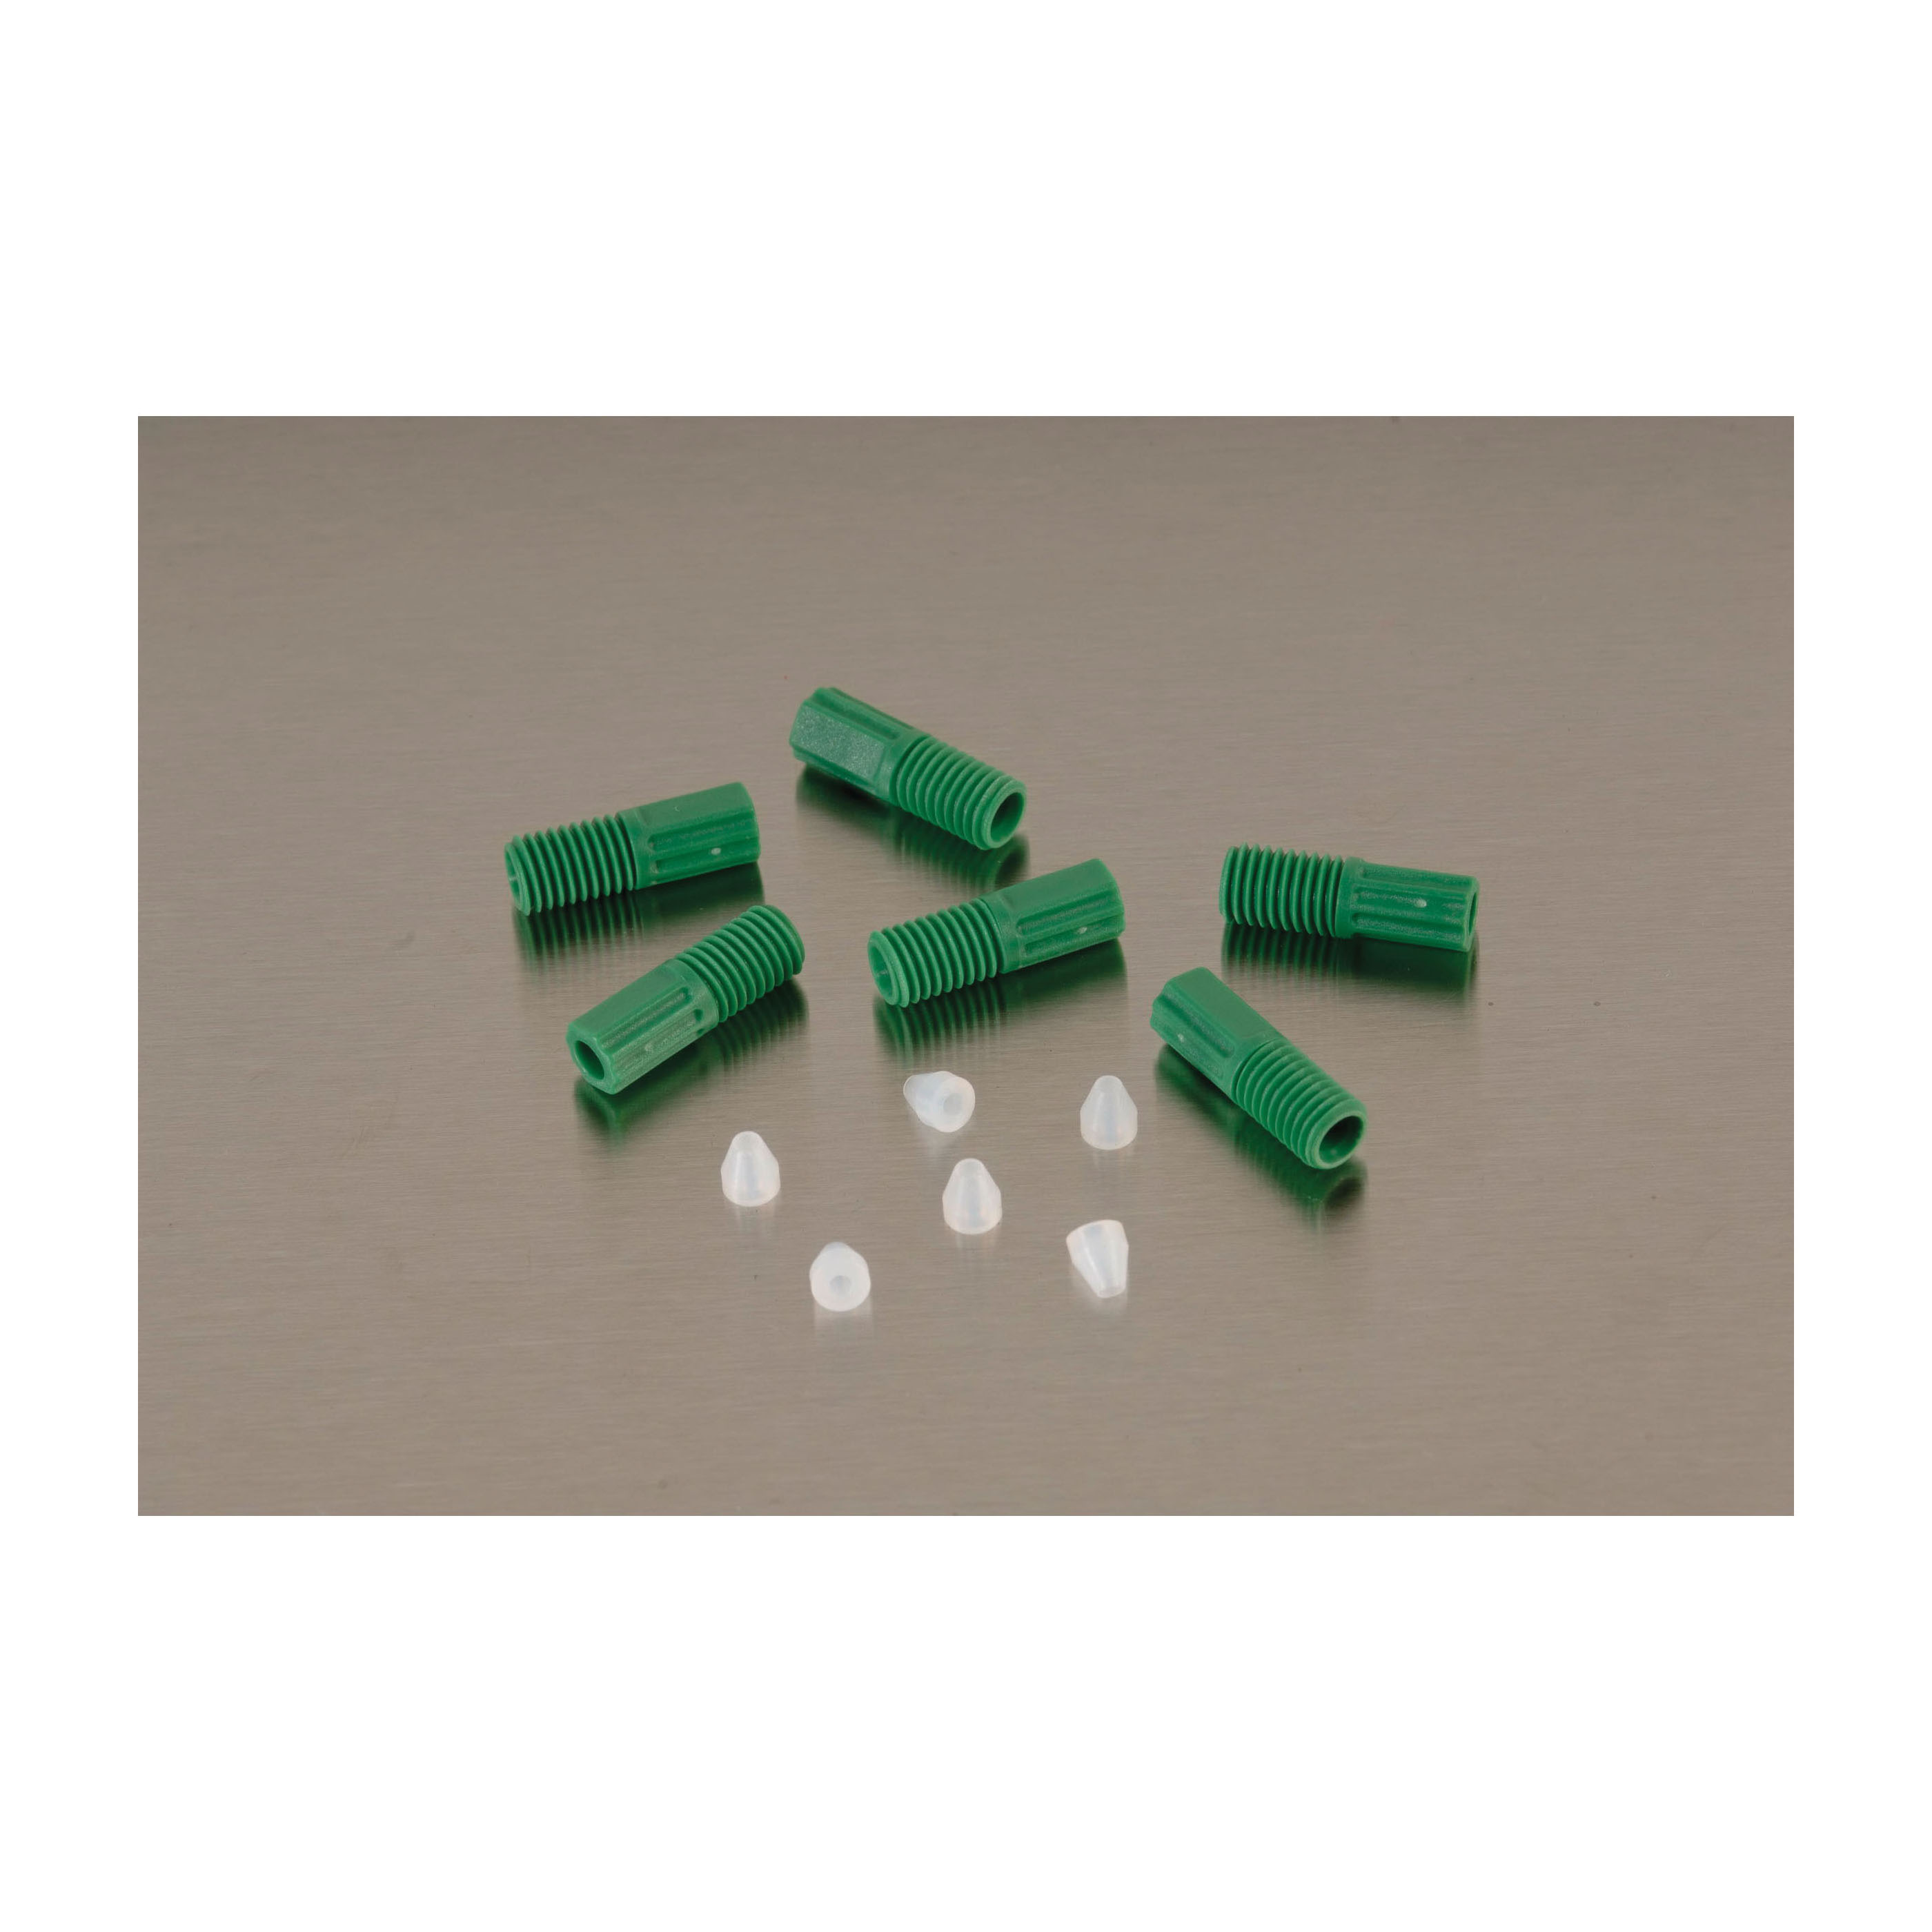 Justrite® 28189 Compression Fitting With Ferrules, For Use With HPLC Poly Manifolds, Resin, Green